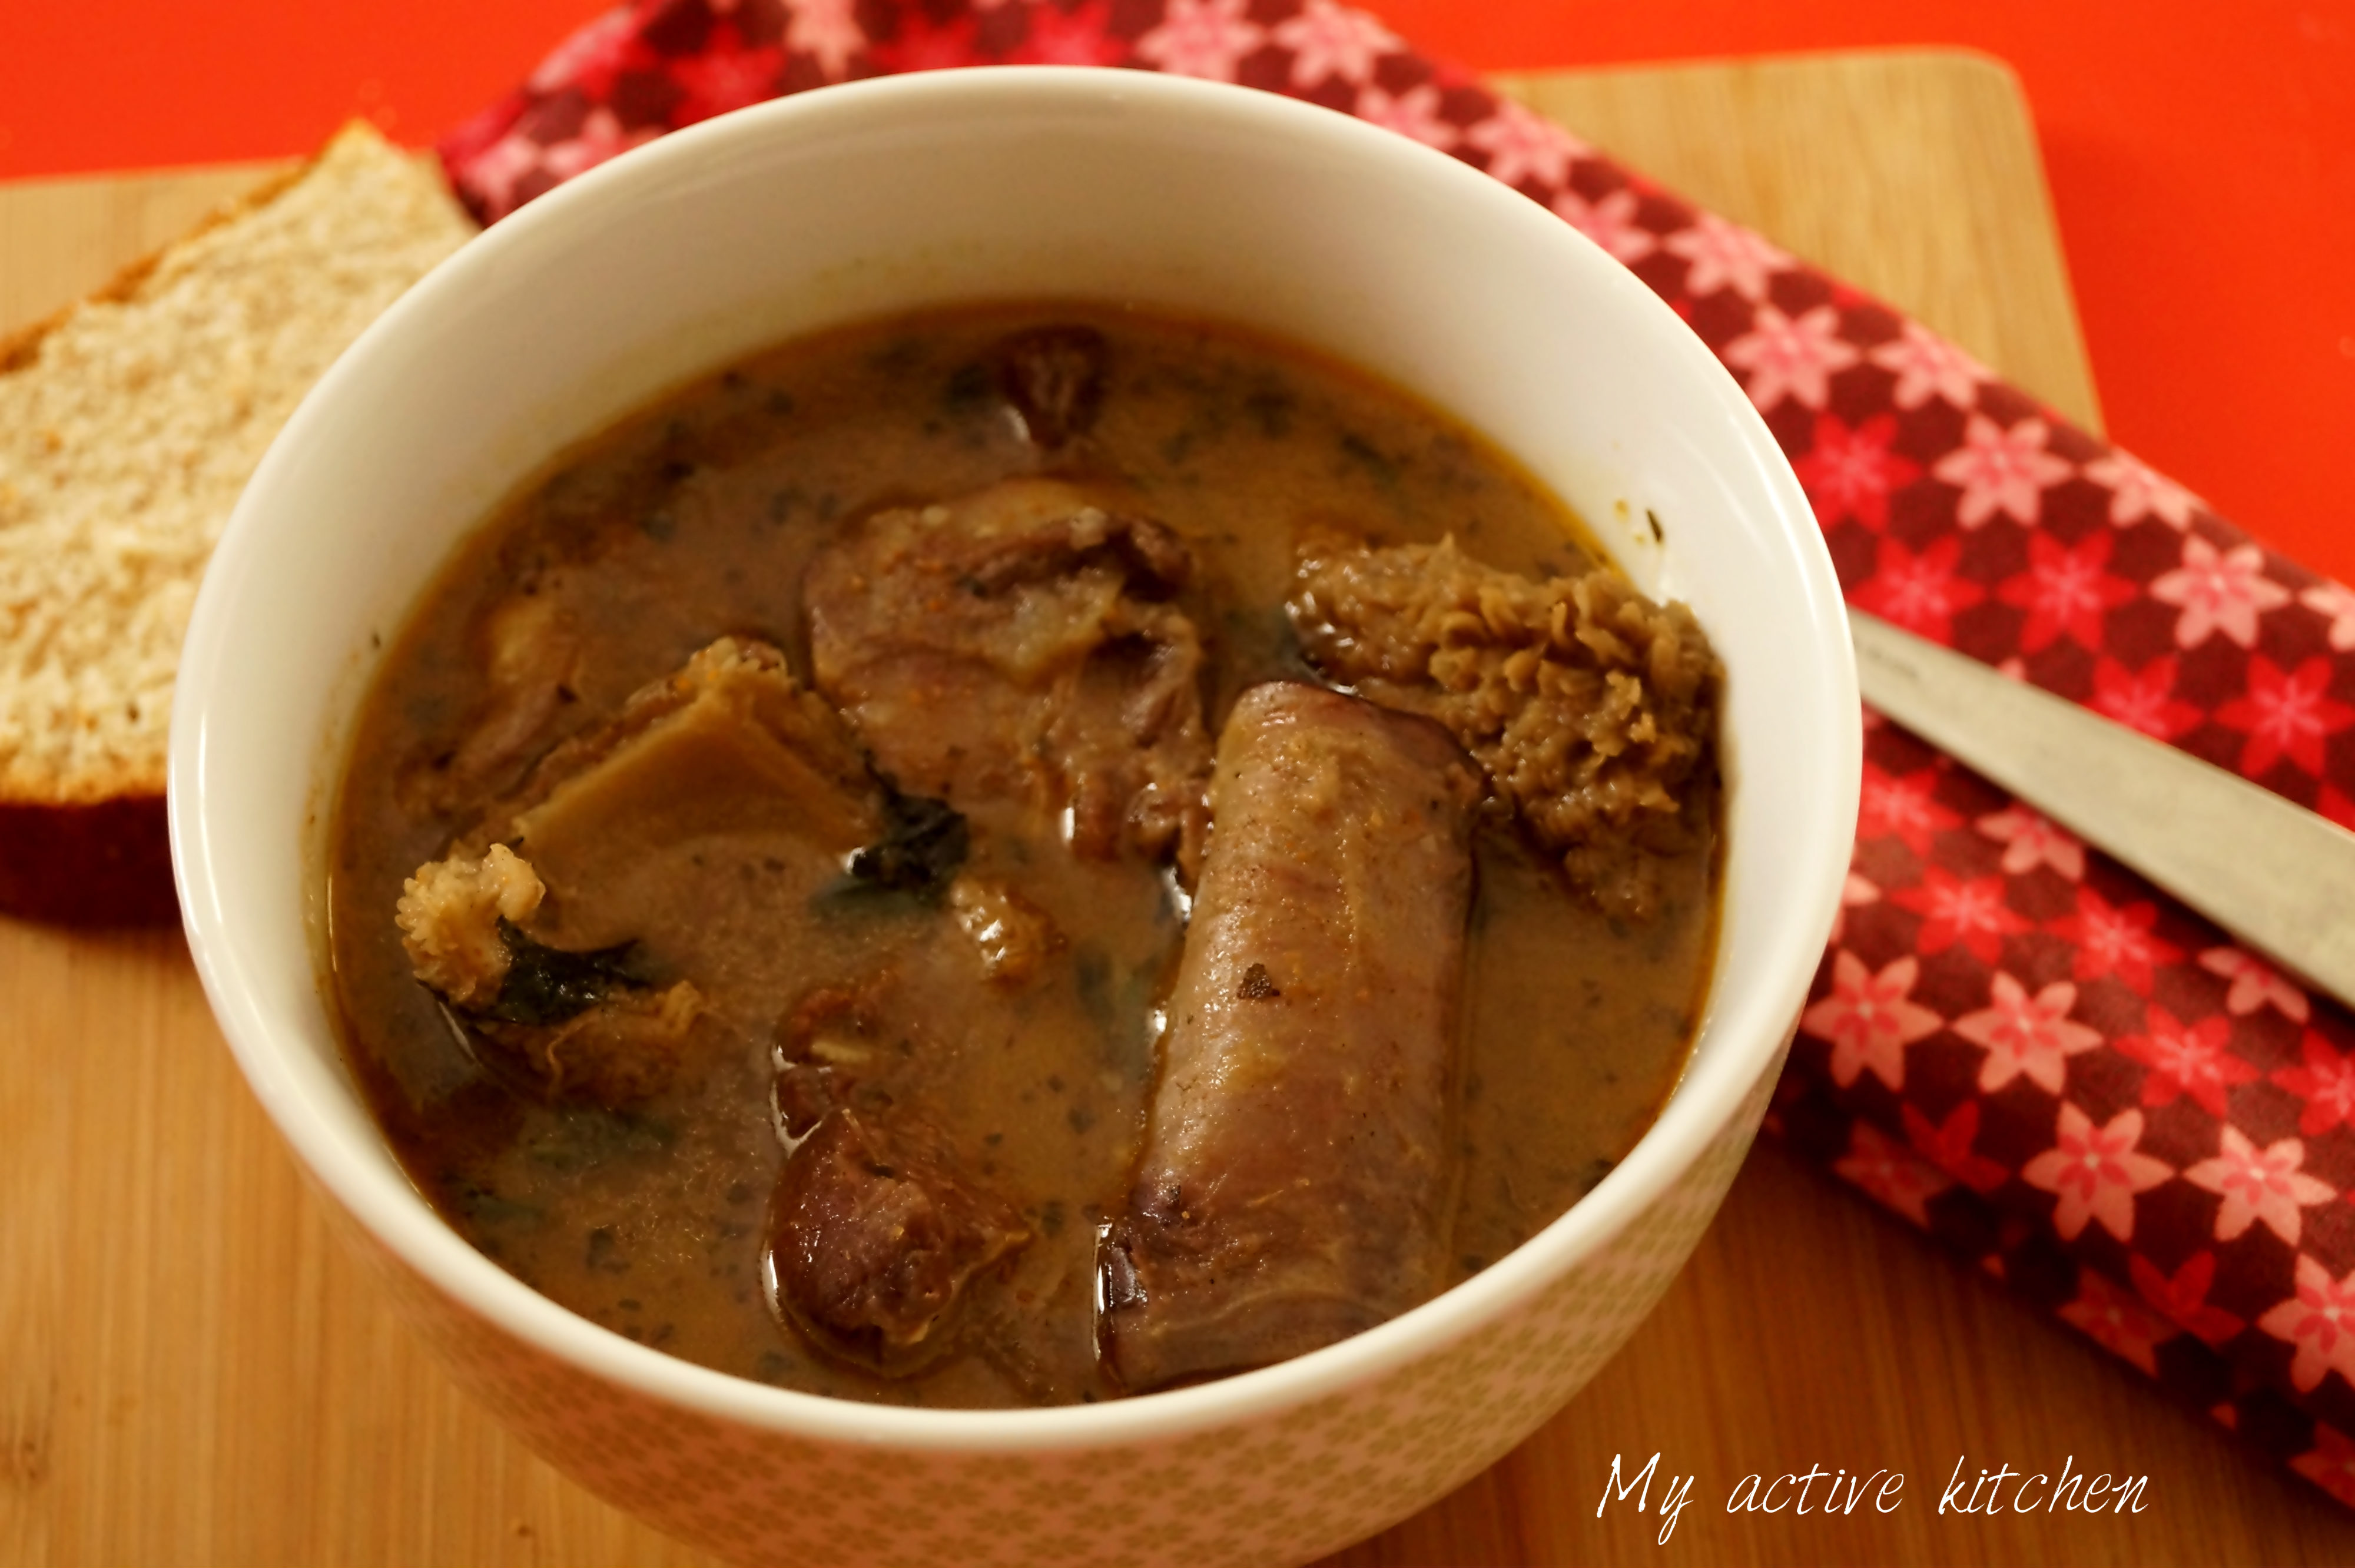 Nigerian assorted meat pepper soup in a white bowl placed on a red table. The bowl is placed beside a floral napkin and crusty bread